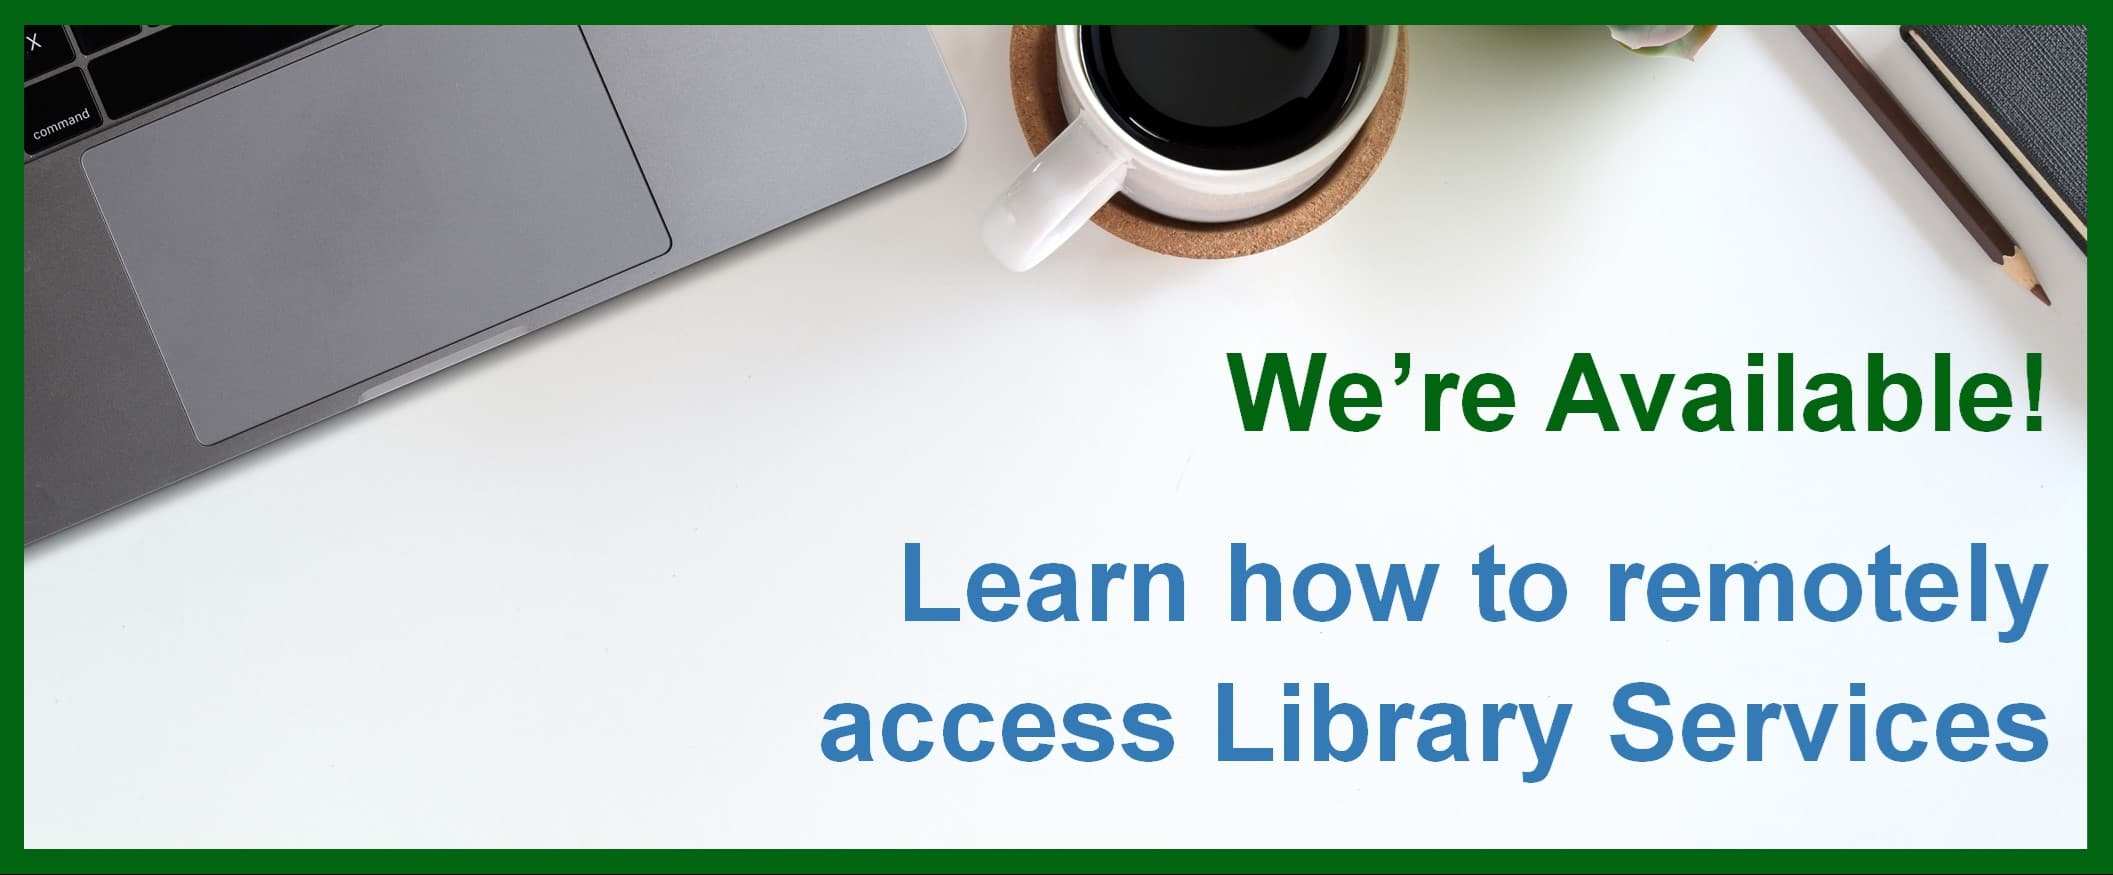 We're Available! Learn how to remotely access Library Services